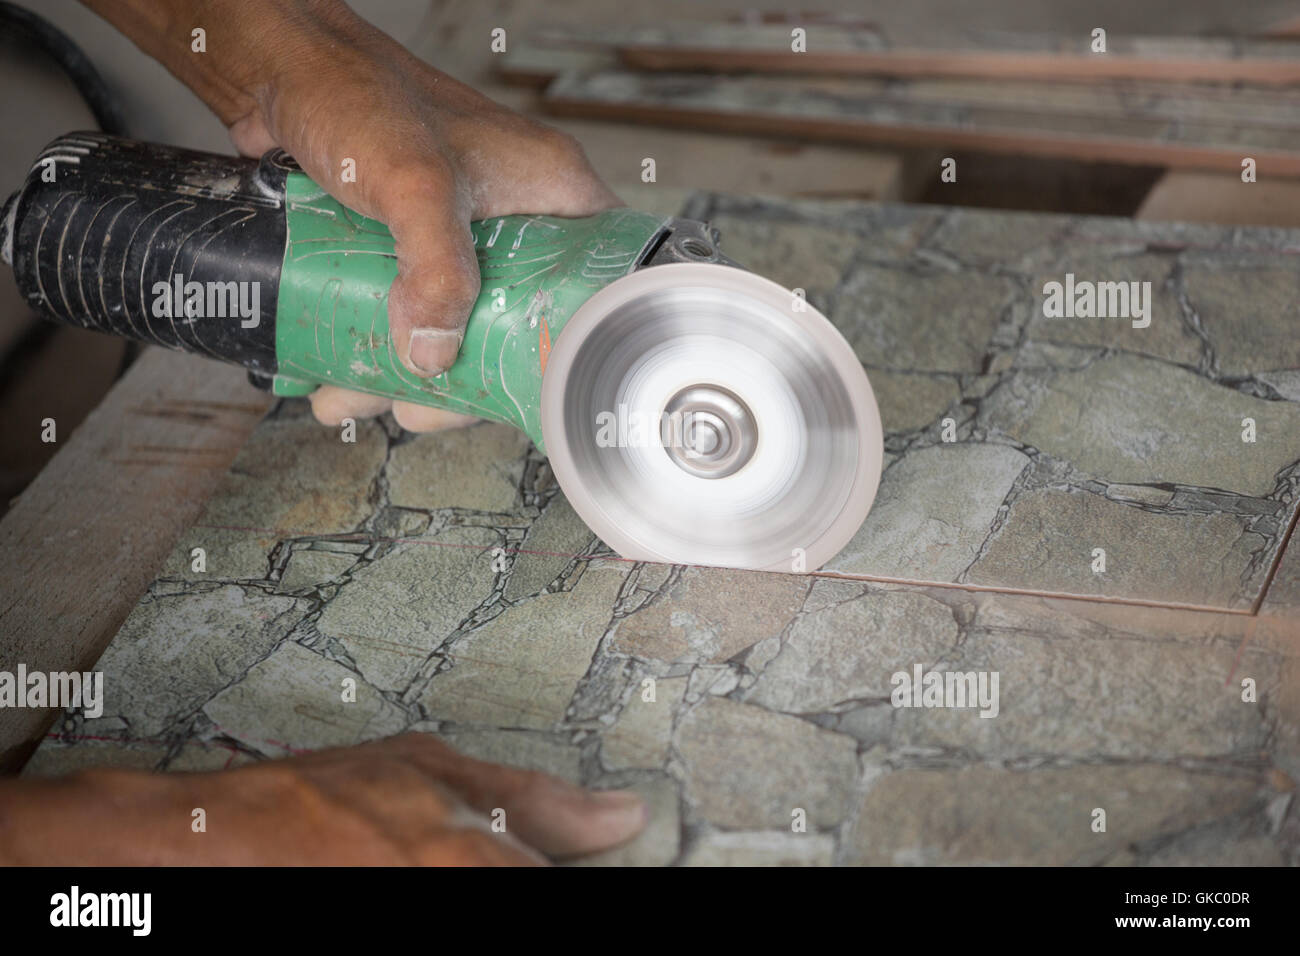 Worker cutting a tile using an angle grinder at construction site worker cutting a tile using an angle grinder at construction site dailygadgetfo Choice Image